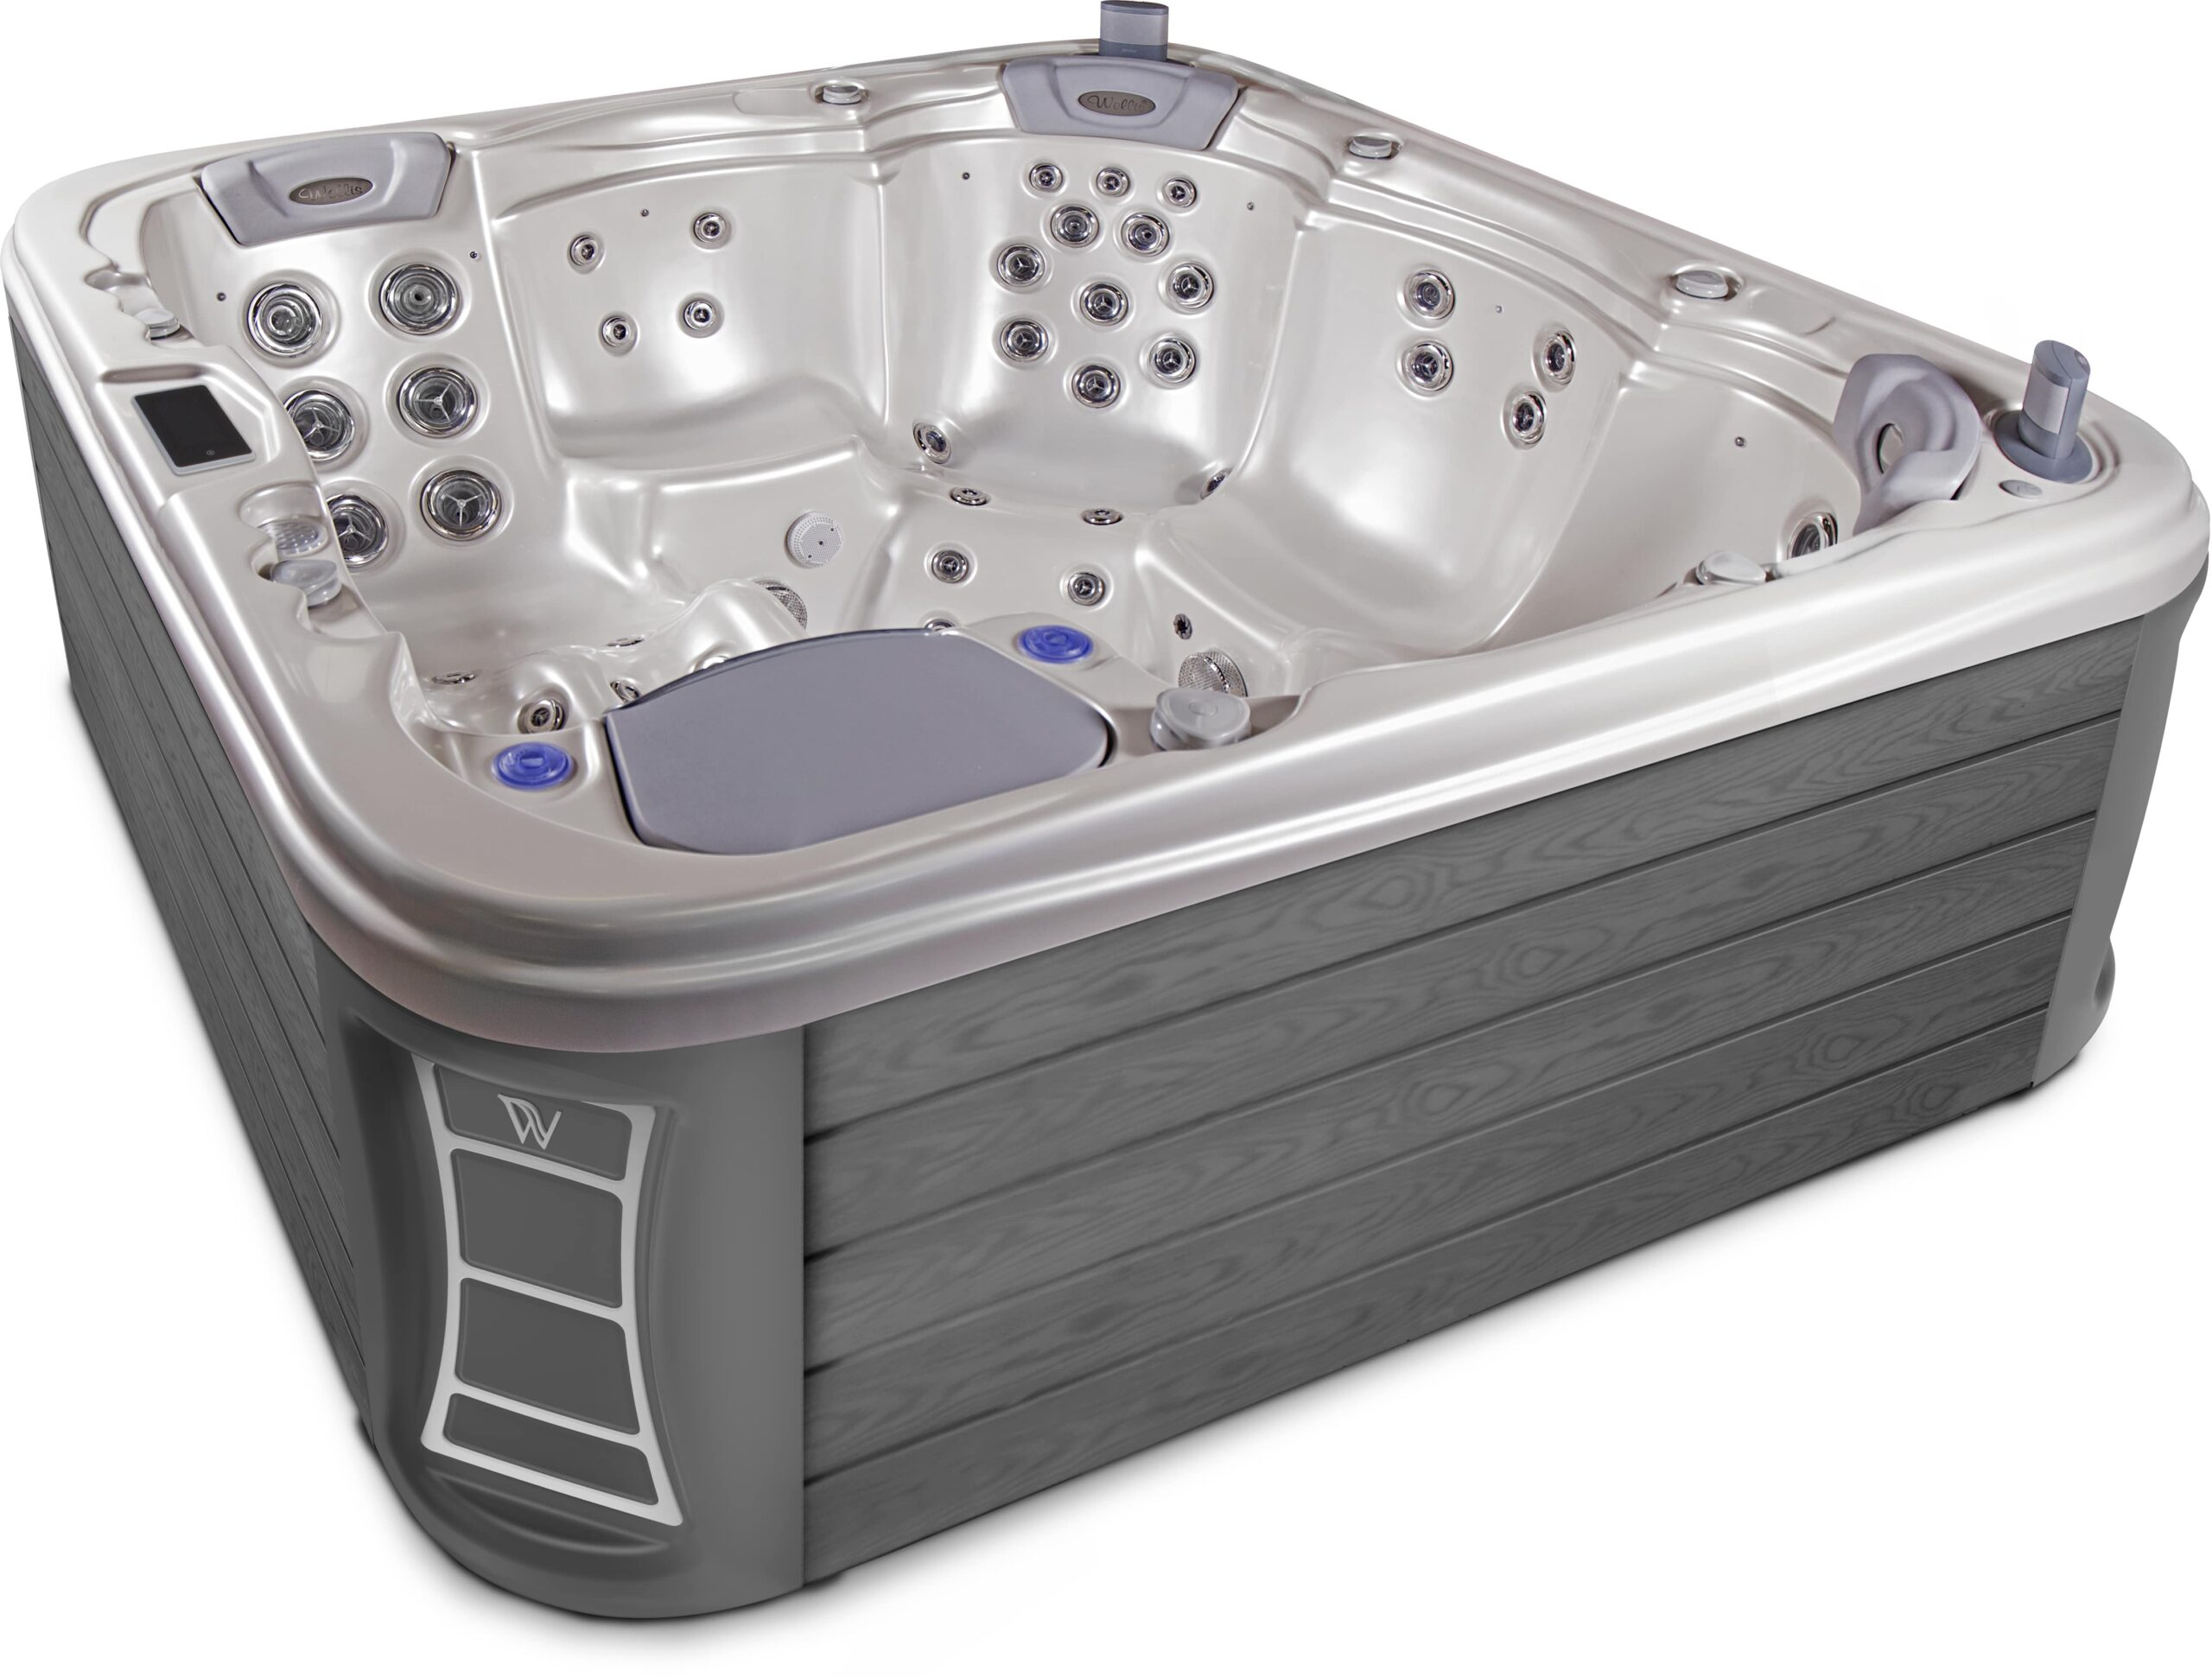 Large hydrotherapy hot tub